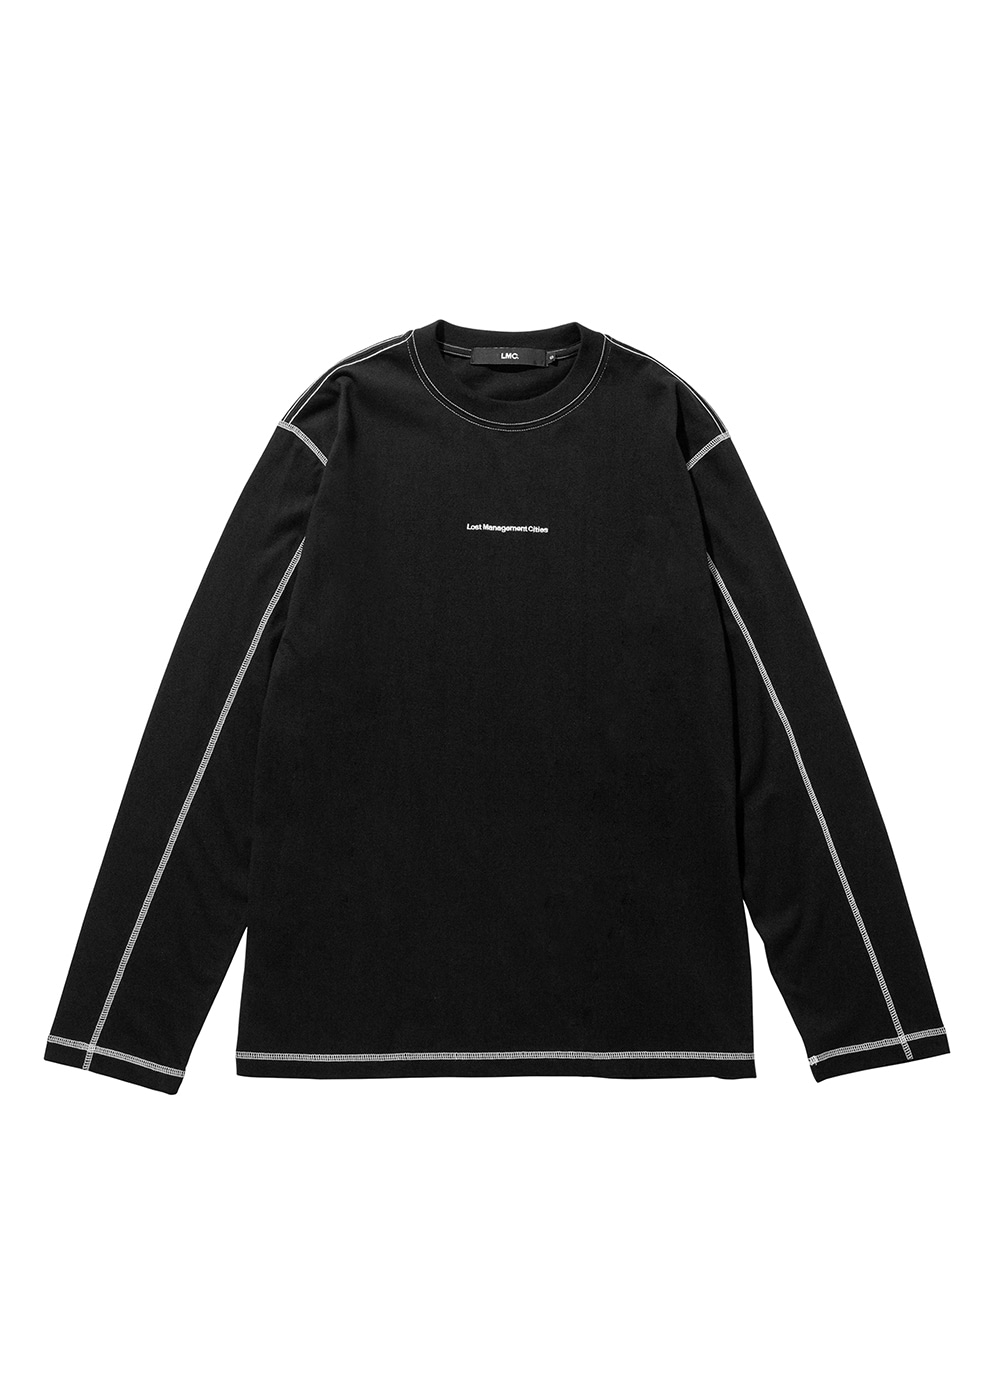 LMC CONTRAST STITCH LONG SLV TEE black